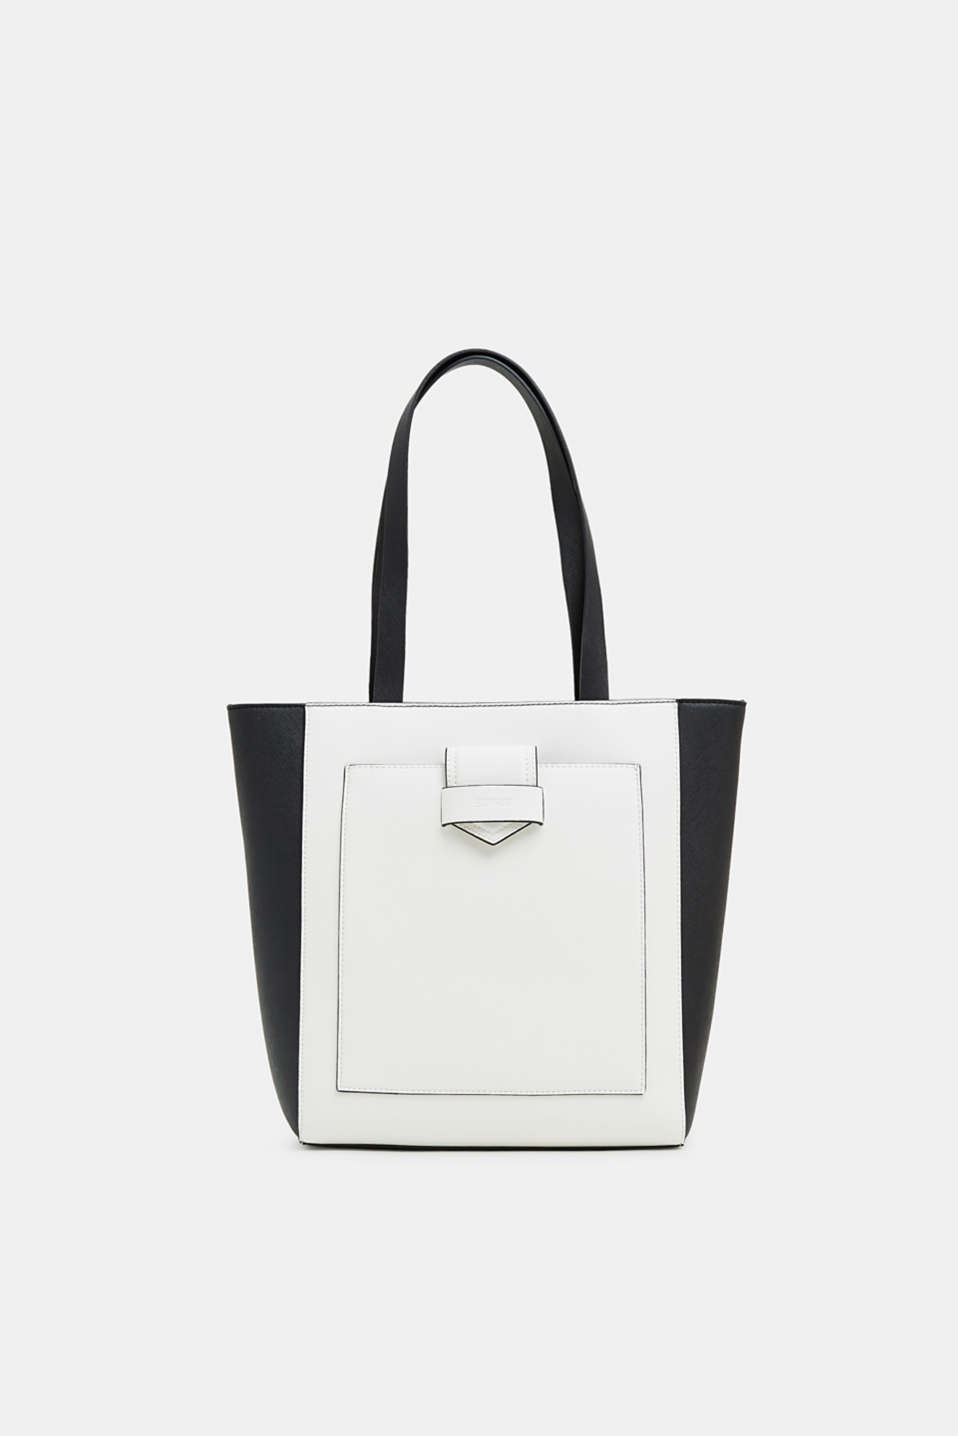 Esprit - Shopper in zwart-witte saffiano-look